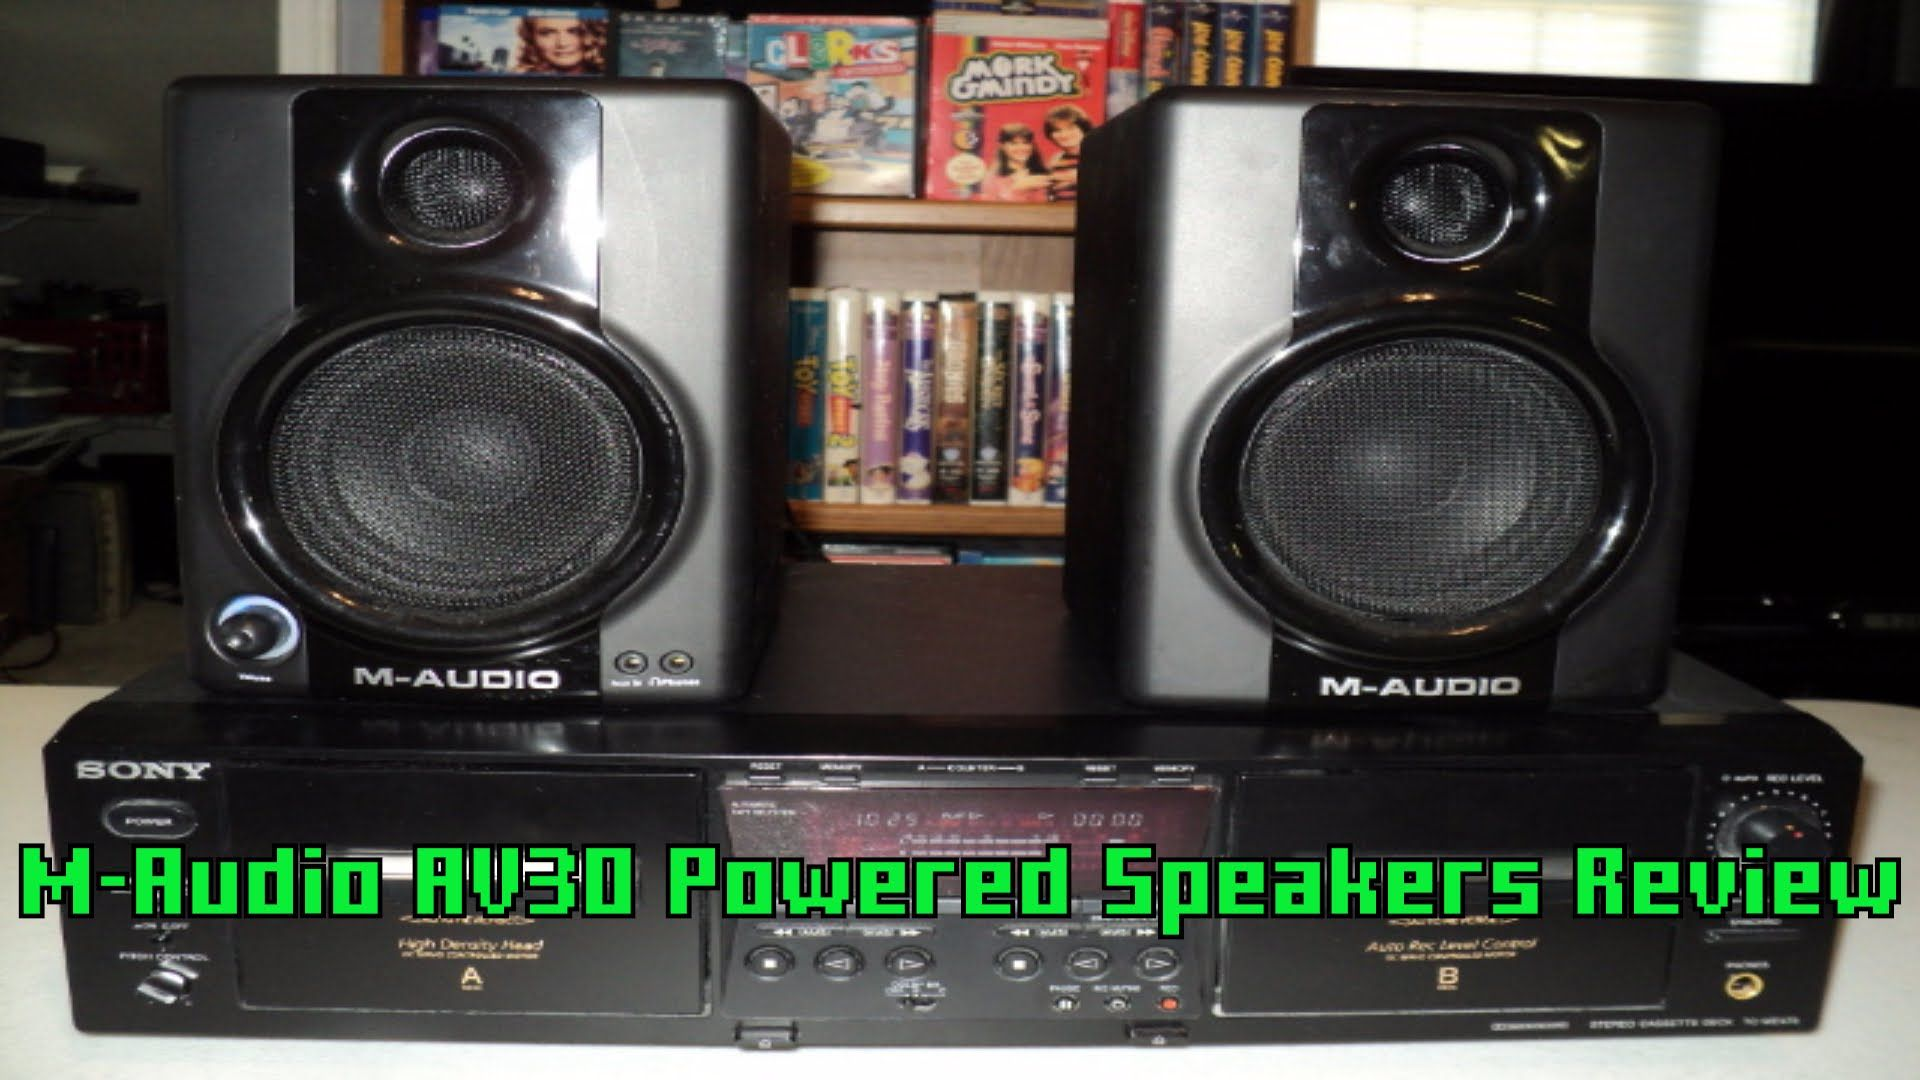 MAudio AV30 Powered Speakers Unboxing and Review M